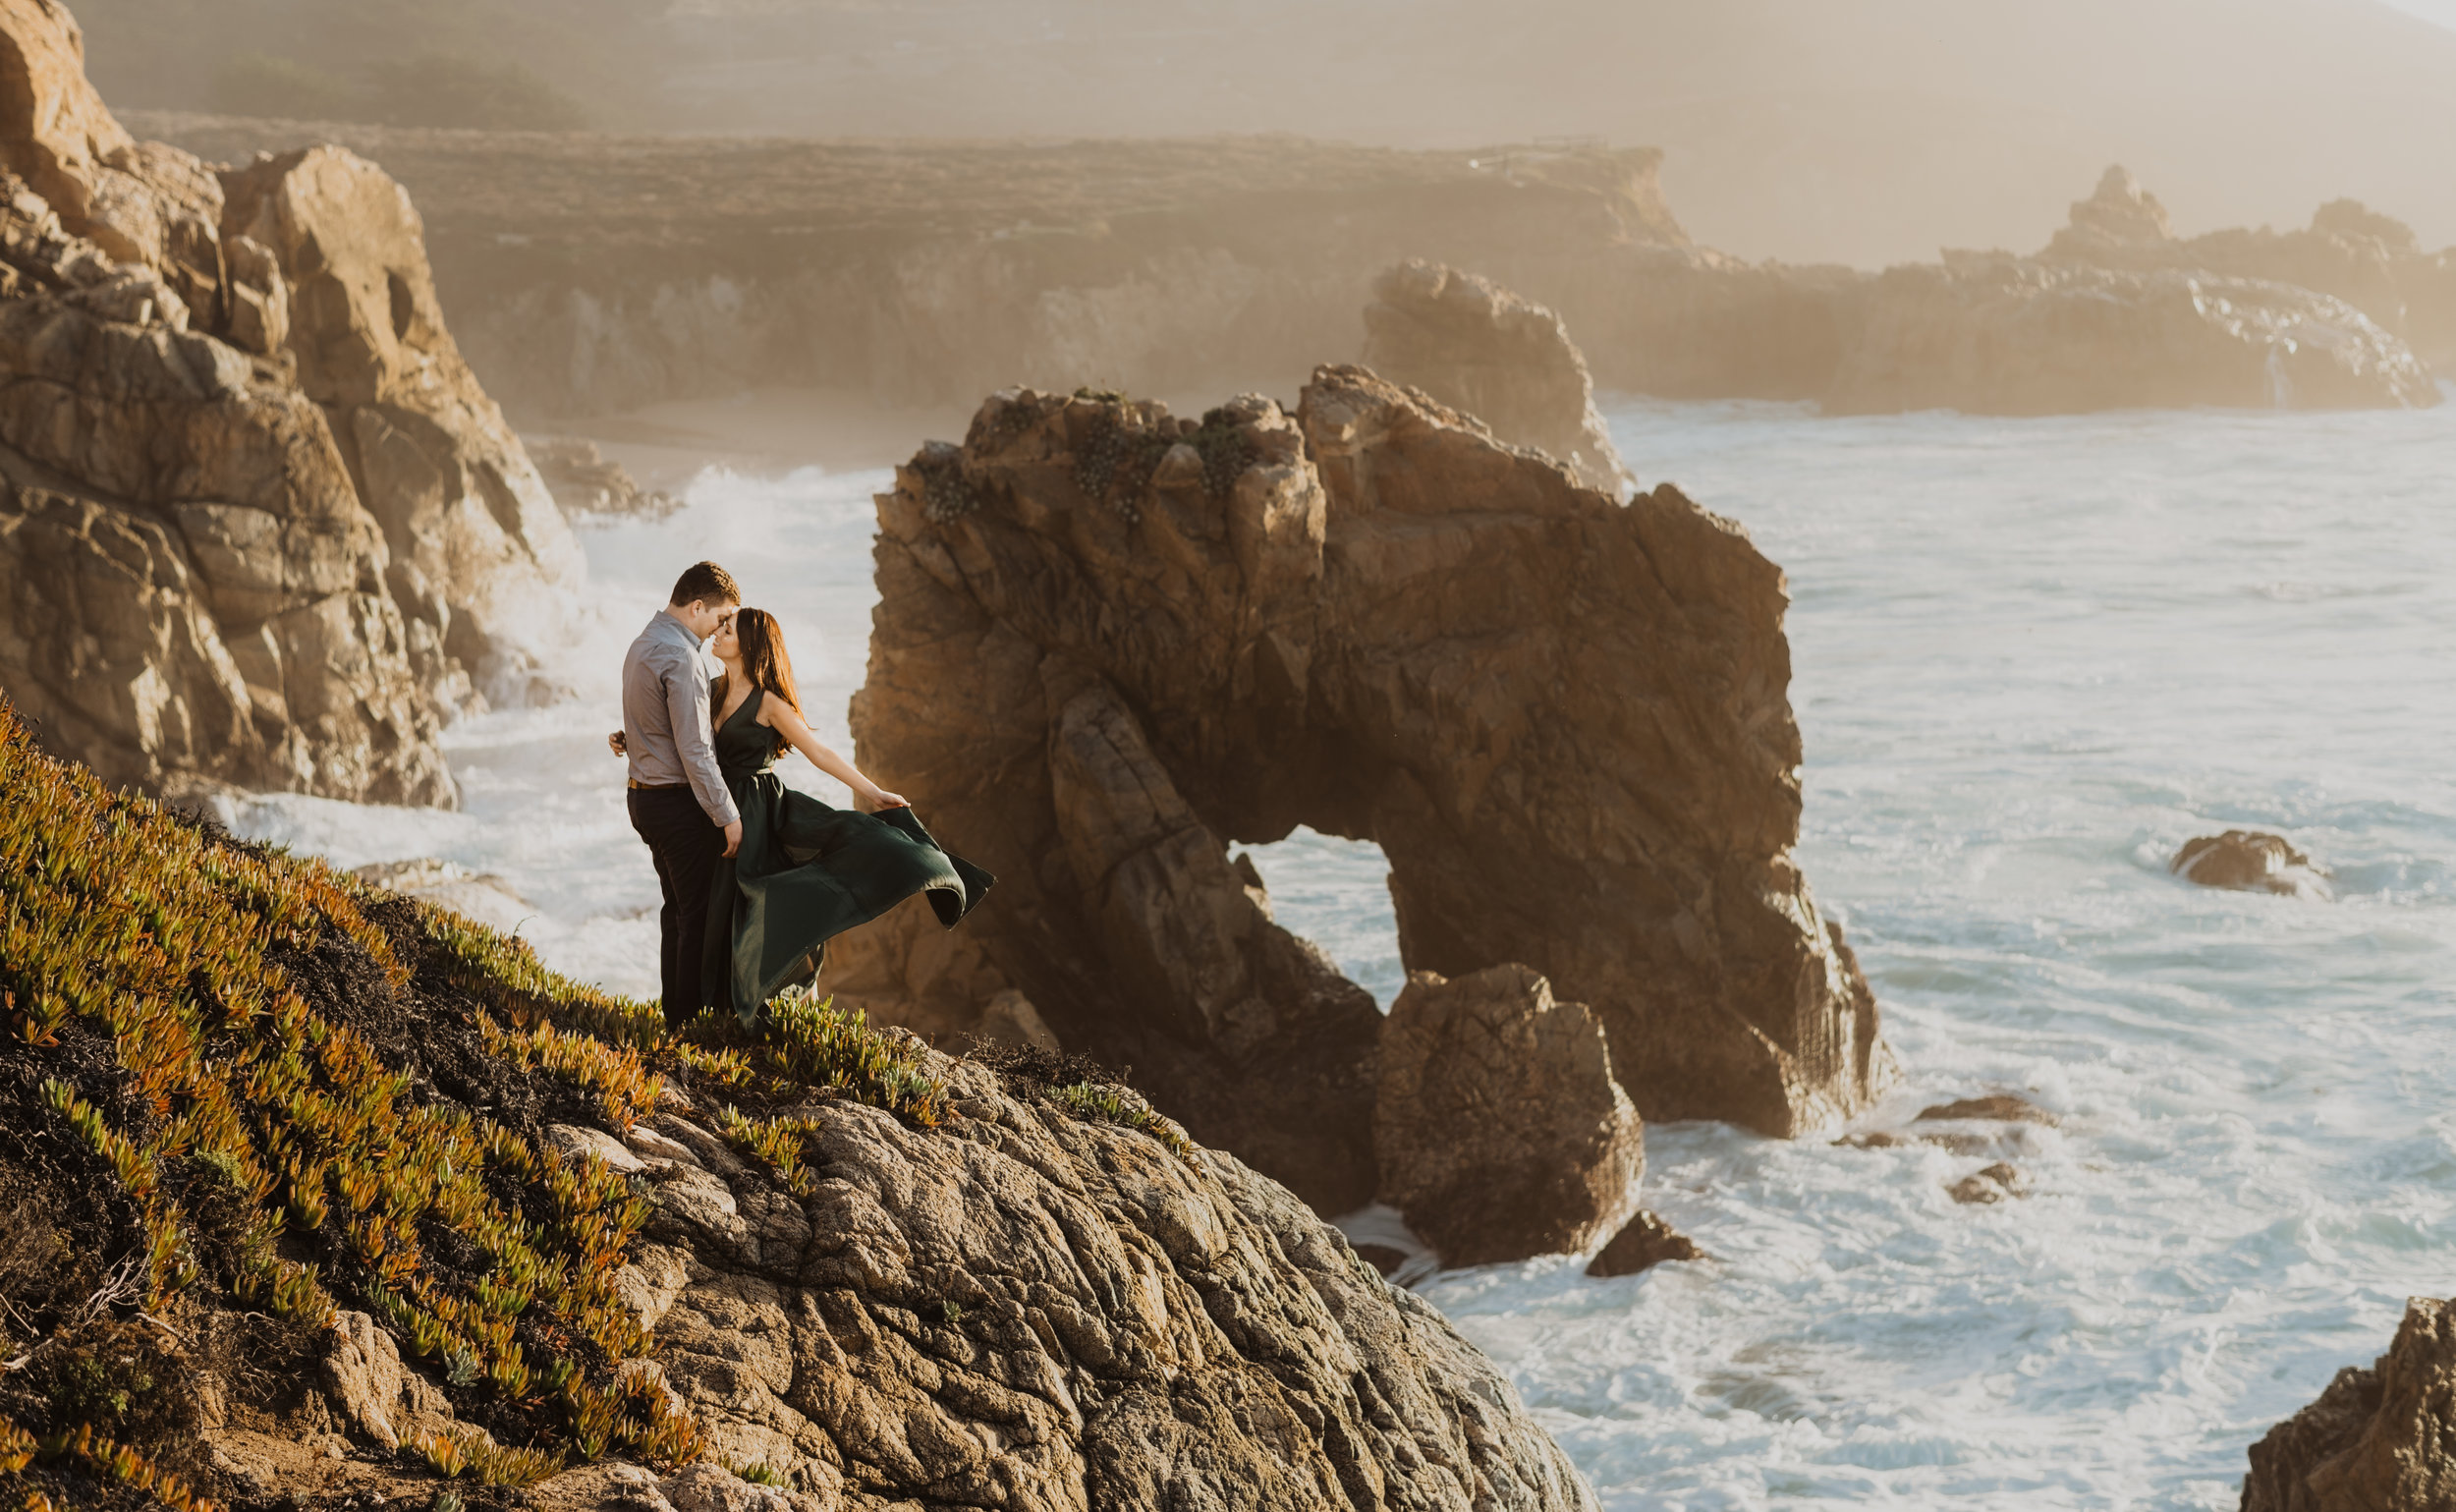 Adventure sessions: - From the Big Sur redwoods to the cliffs of the sea let's adventure together. For up to two hours let me be your tour guide, bring hiking boots and let me show you all my favorite hidden spots. $700 ( due to the dangerous nature of some locations, this is only for those 18 and older)